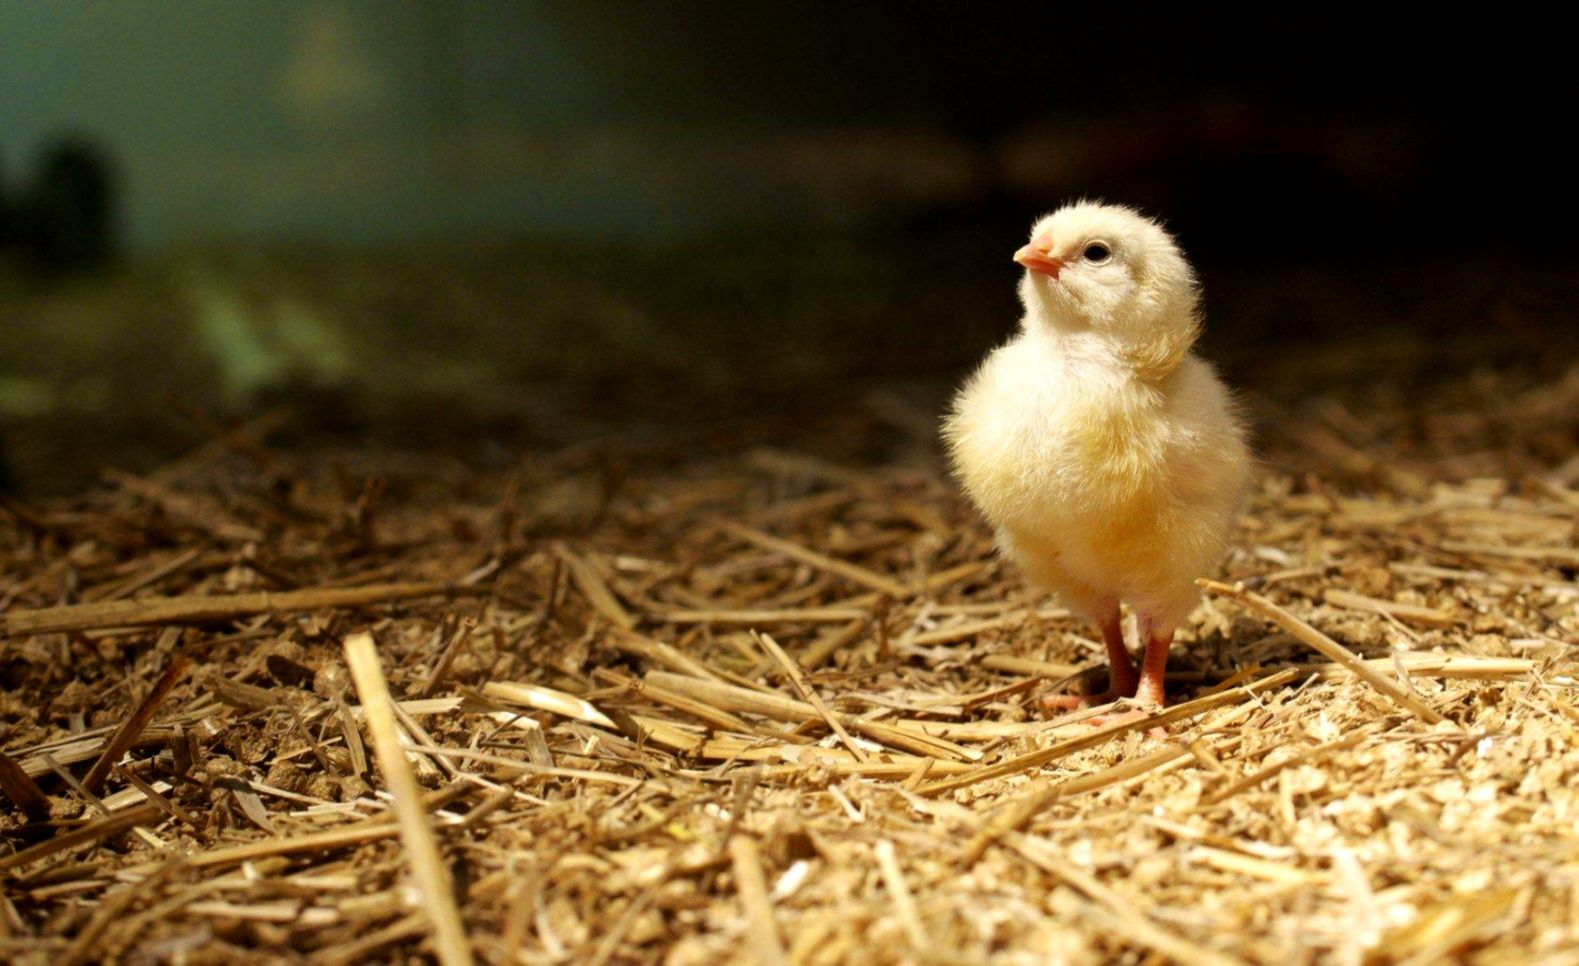 Chick Look Hd Wallpapers